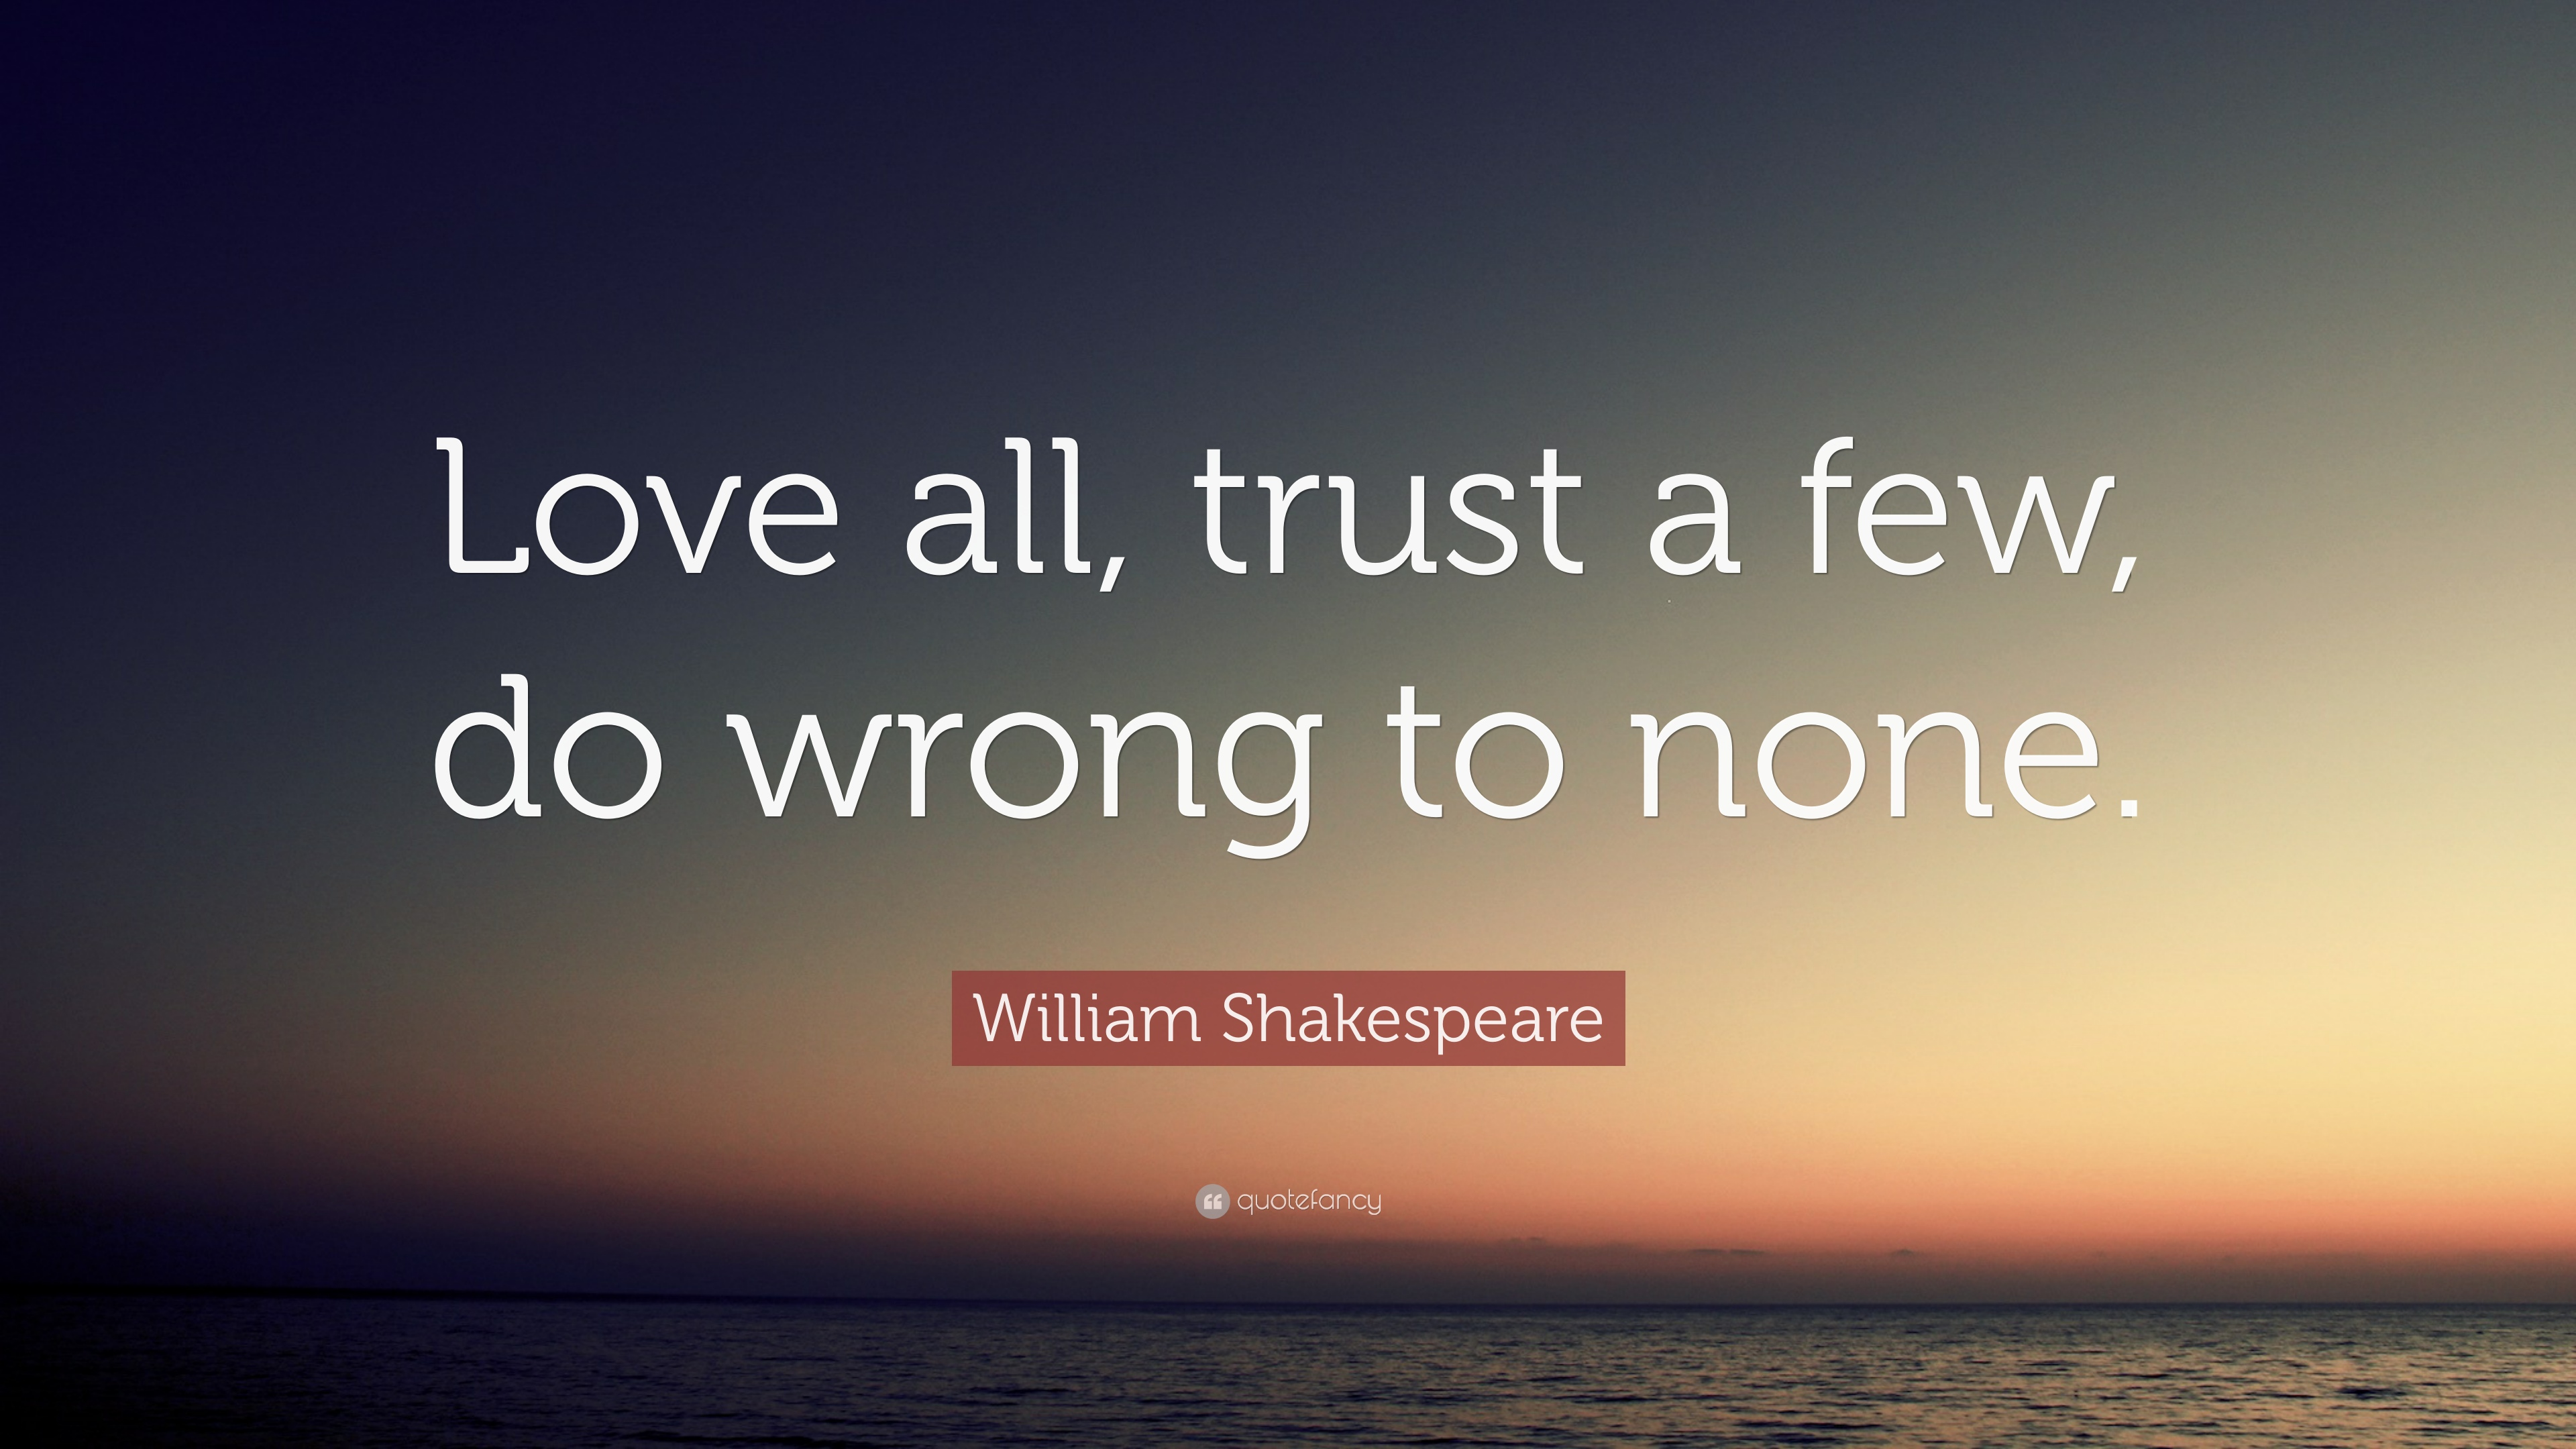 William Shakespeare Quote Love All Trust A Few Do Wrong To None